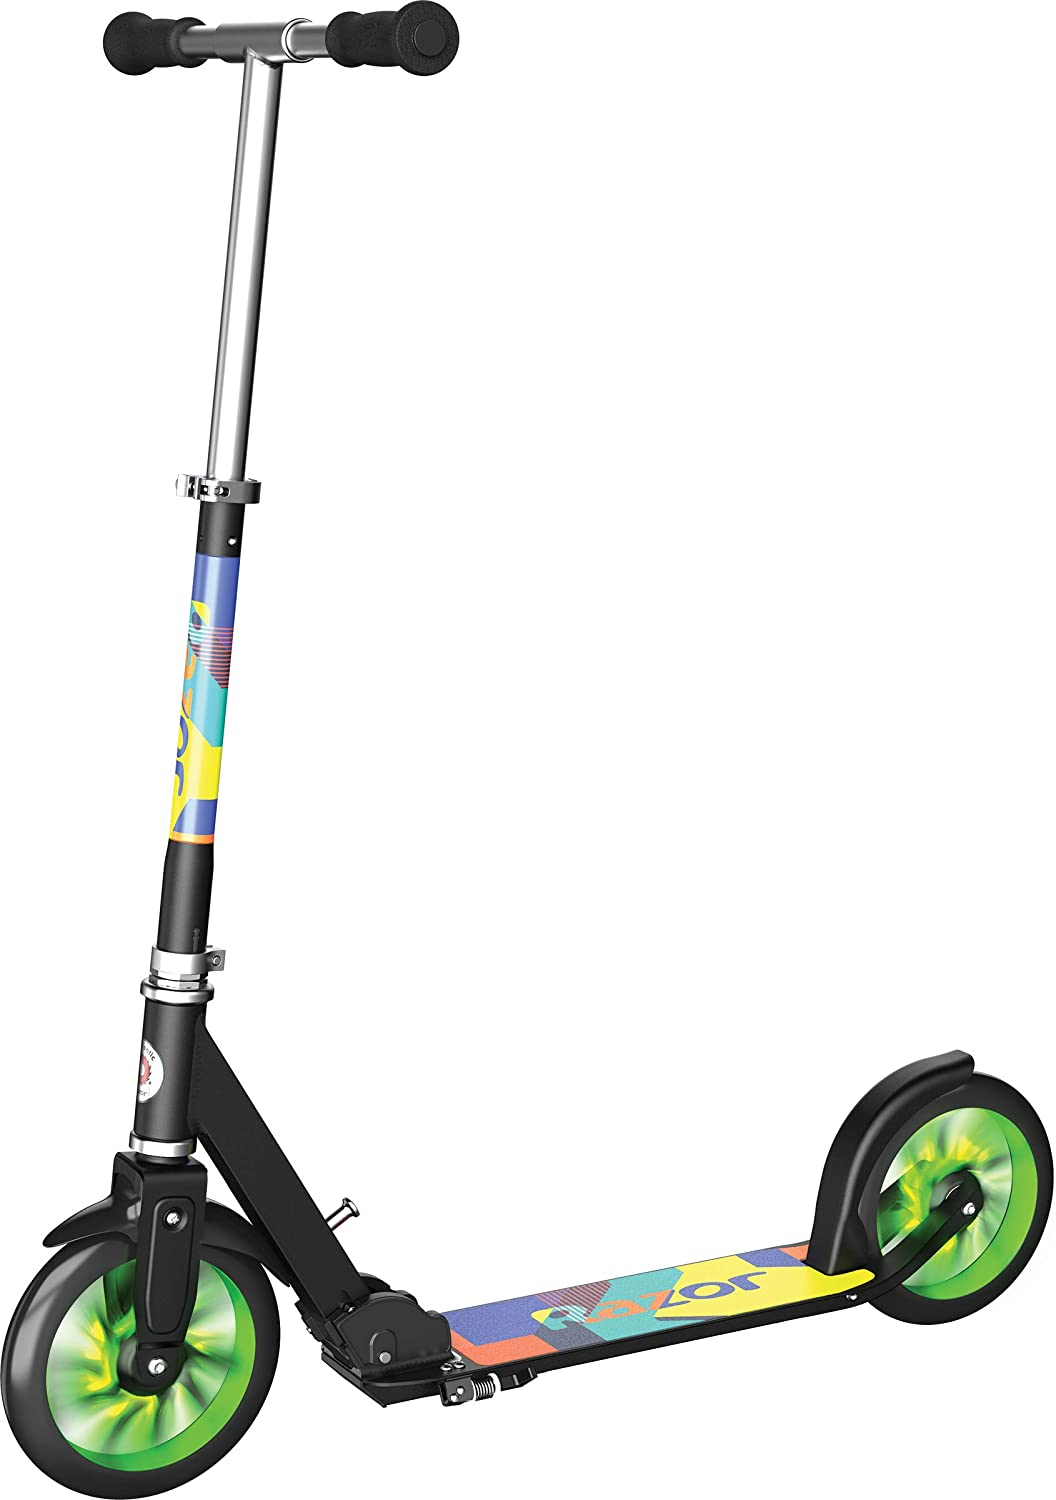 Folding Scooter for Riders Up to 220 lbs Razor A5 Lux Light-Up Kick Scooter Lighted Large Wheels